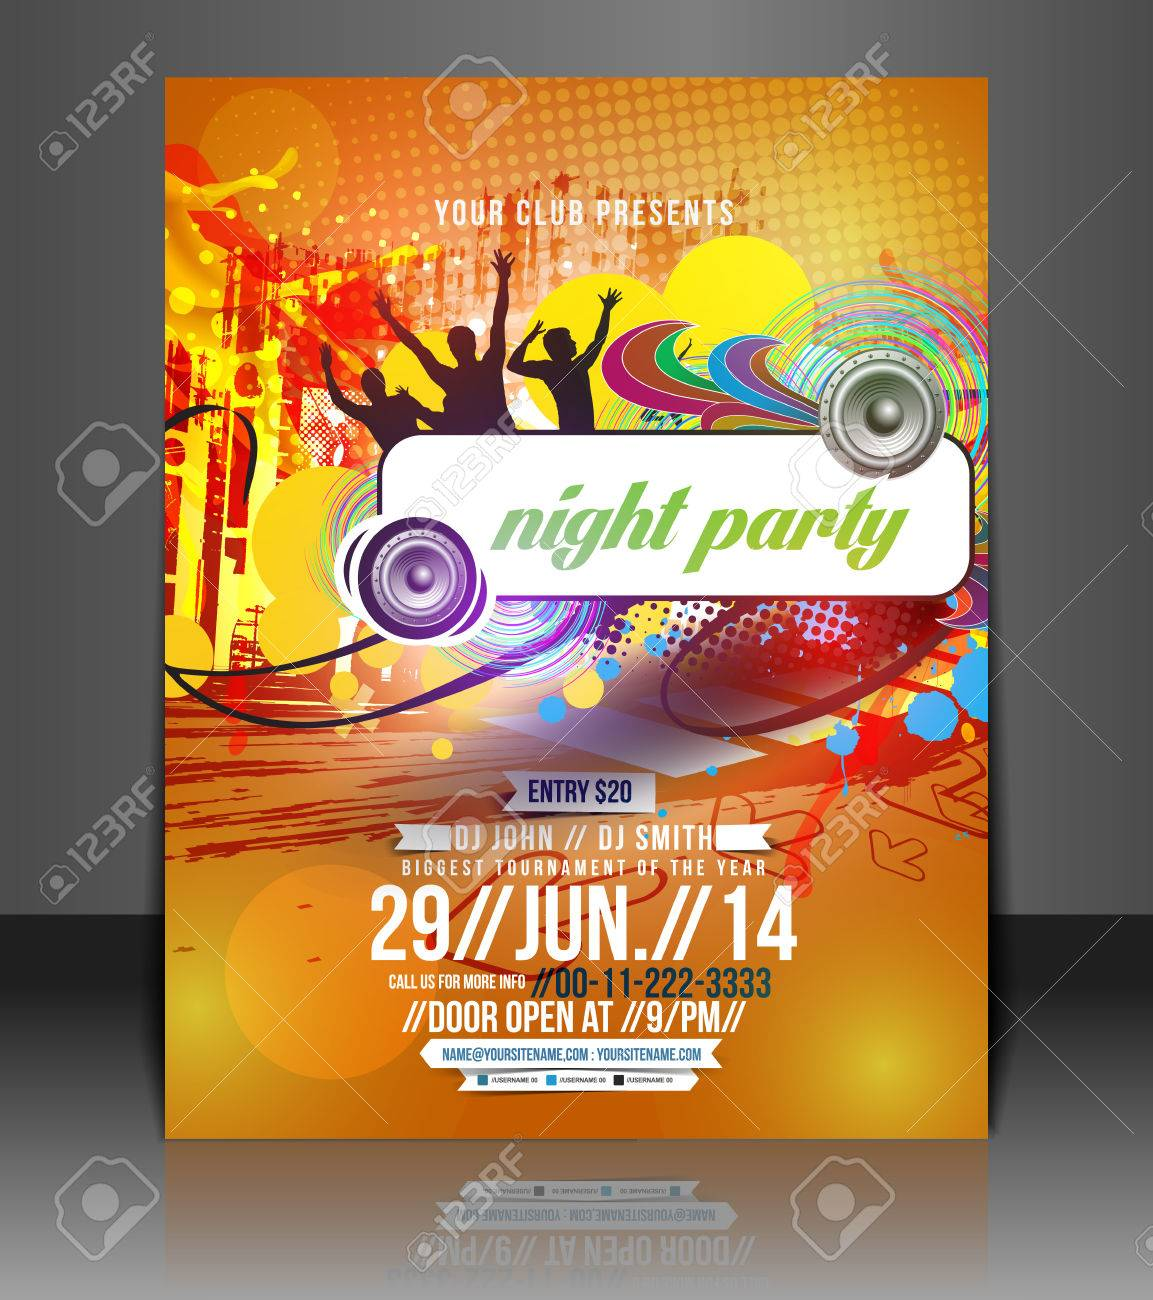 Poster design free -  Poster Template Design Royalty Free Cliparts Download